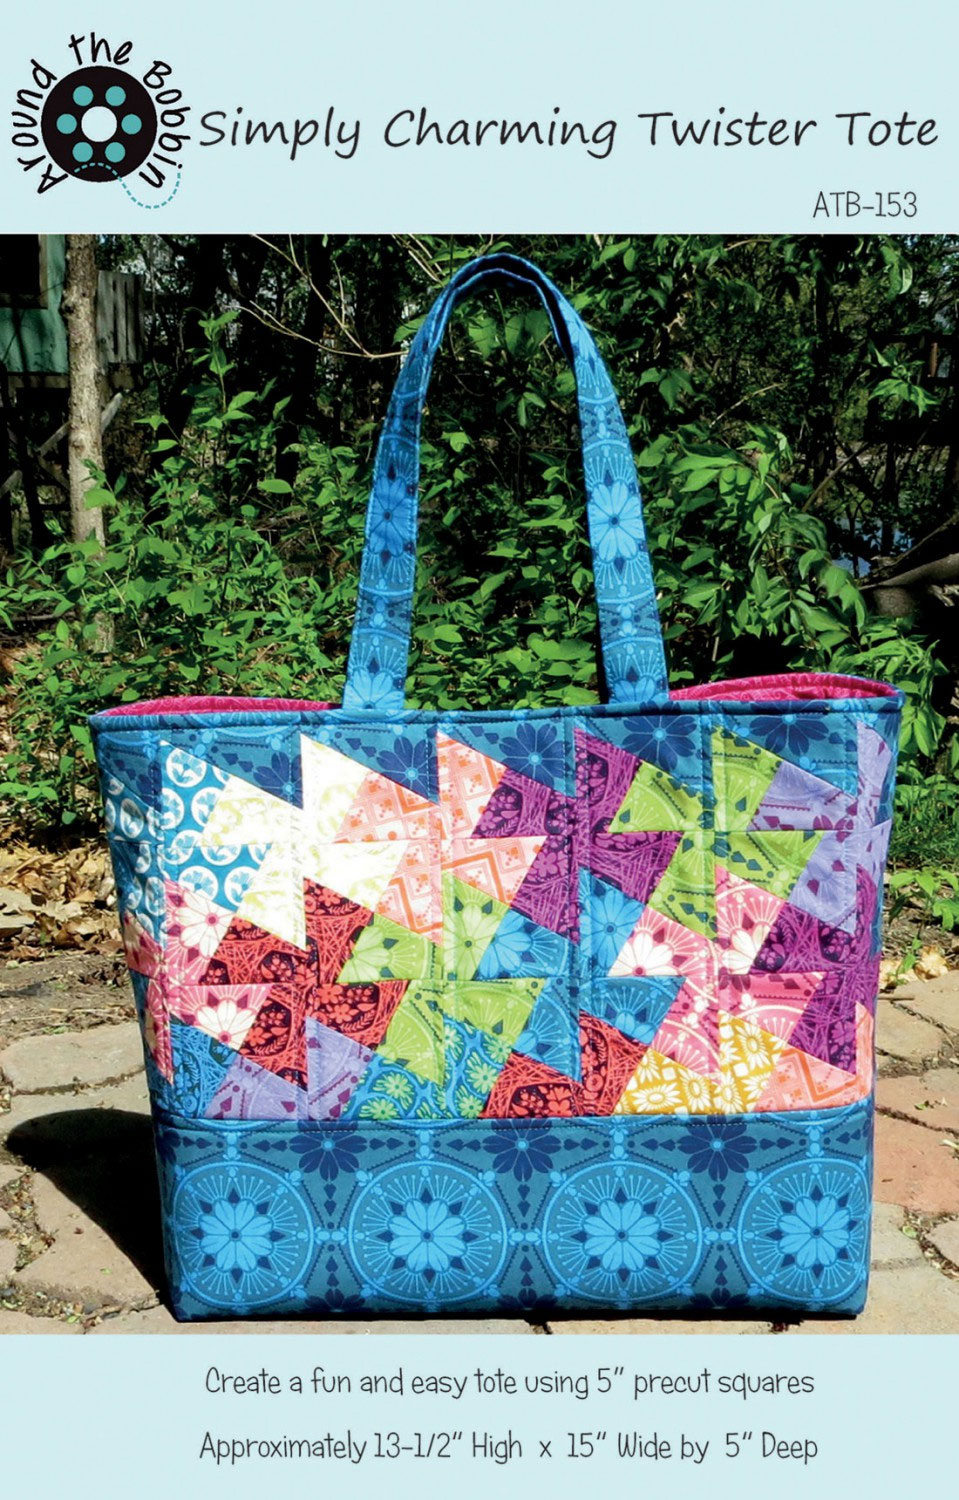 simply-charming-twister-tote-sewing-pattern-Around-The-Bobbin-front